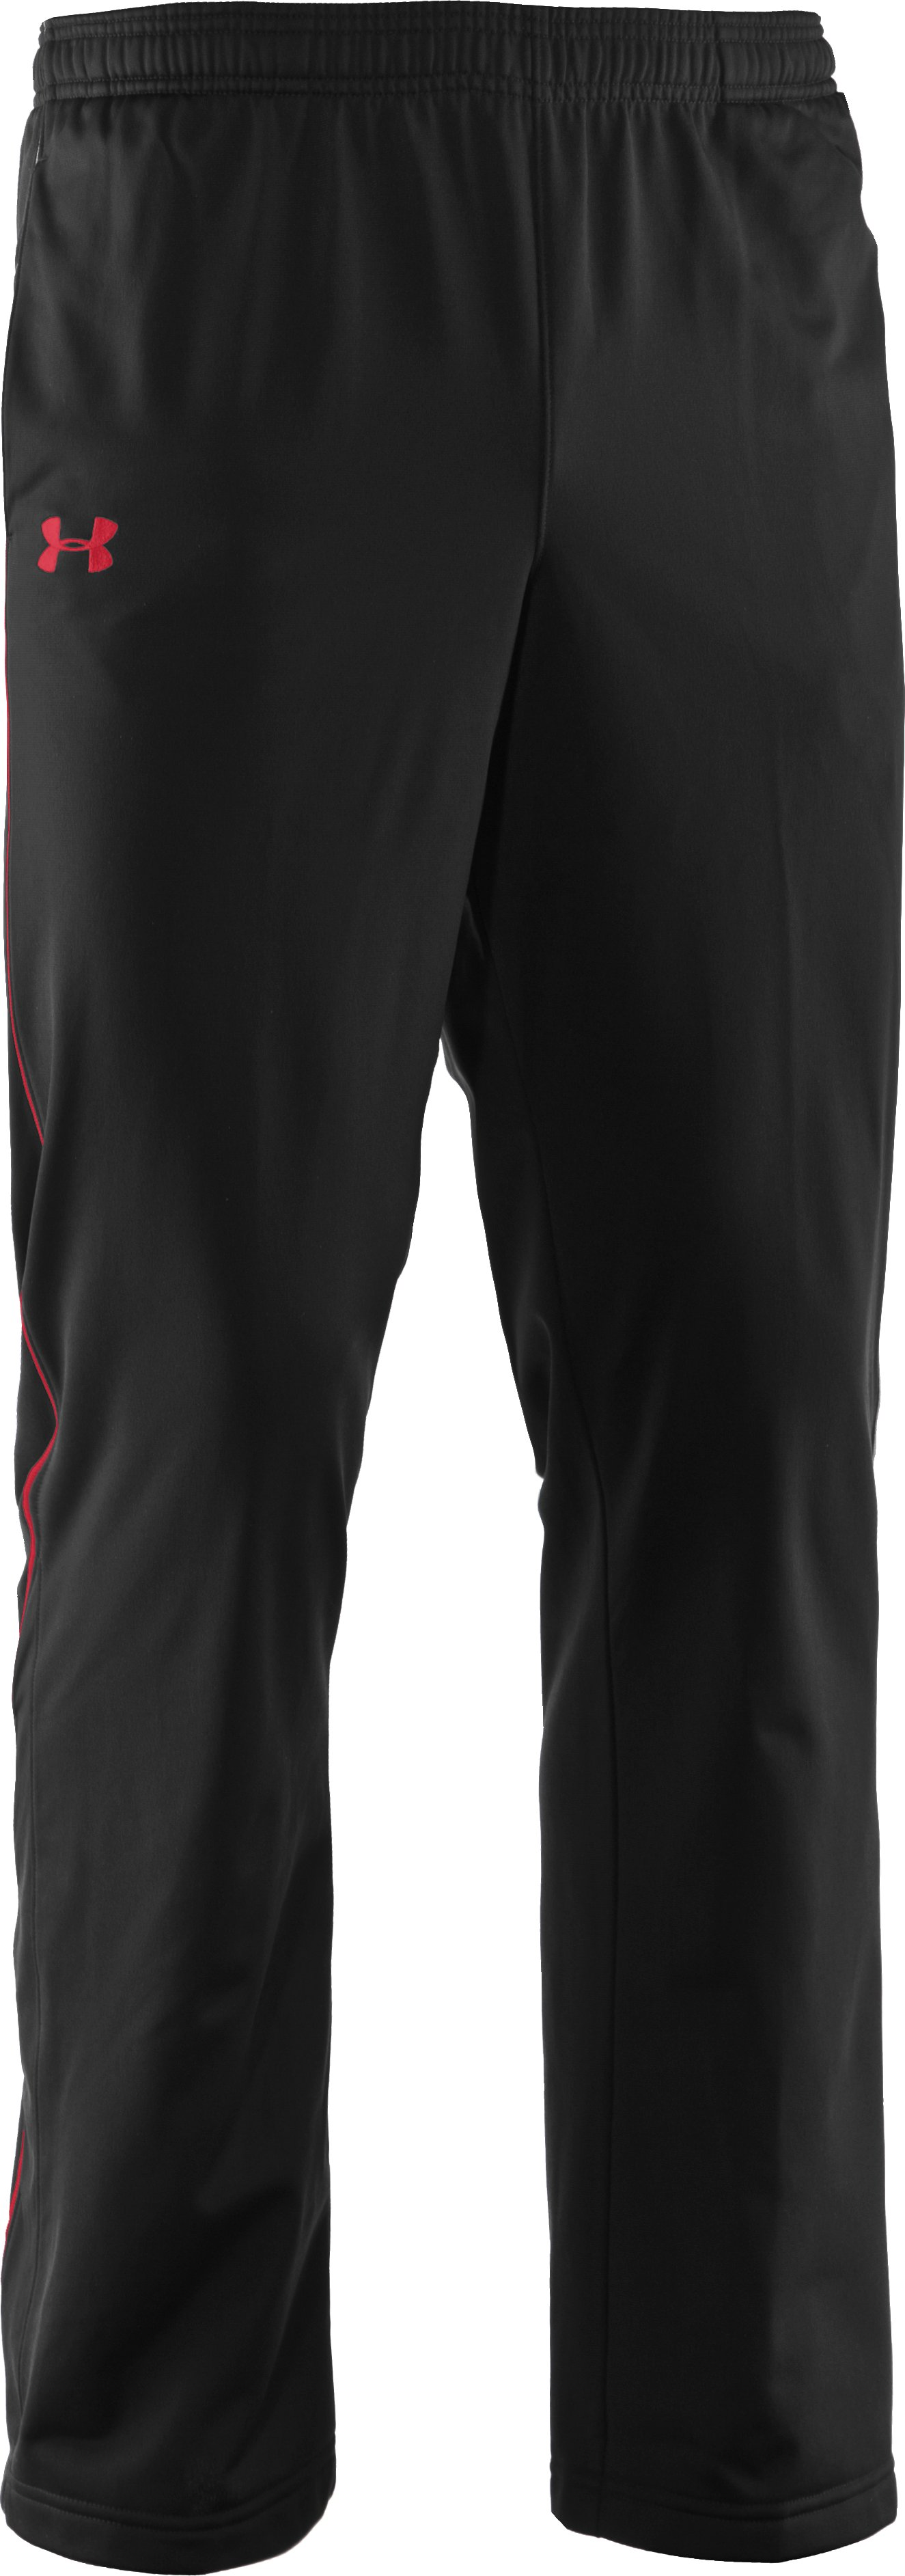 Men's UA Strength Track Pants, Black